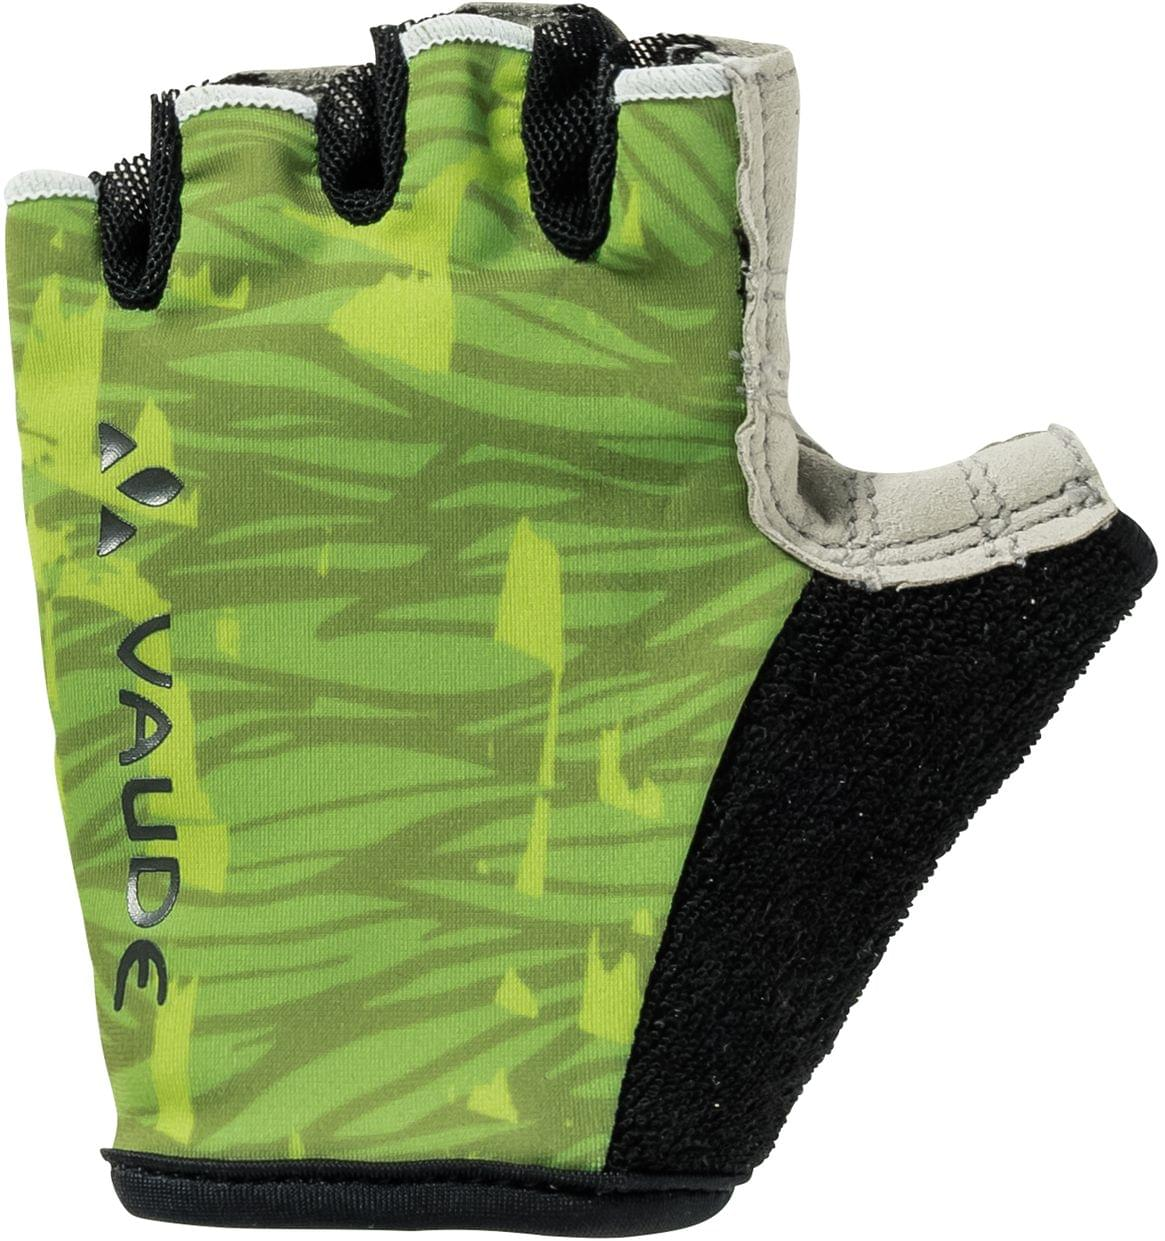 Vaude Kids Grody Gloves - chute green 5